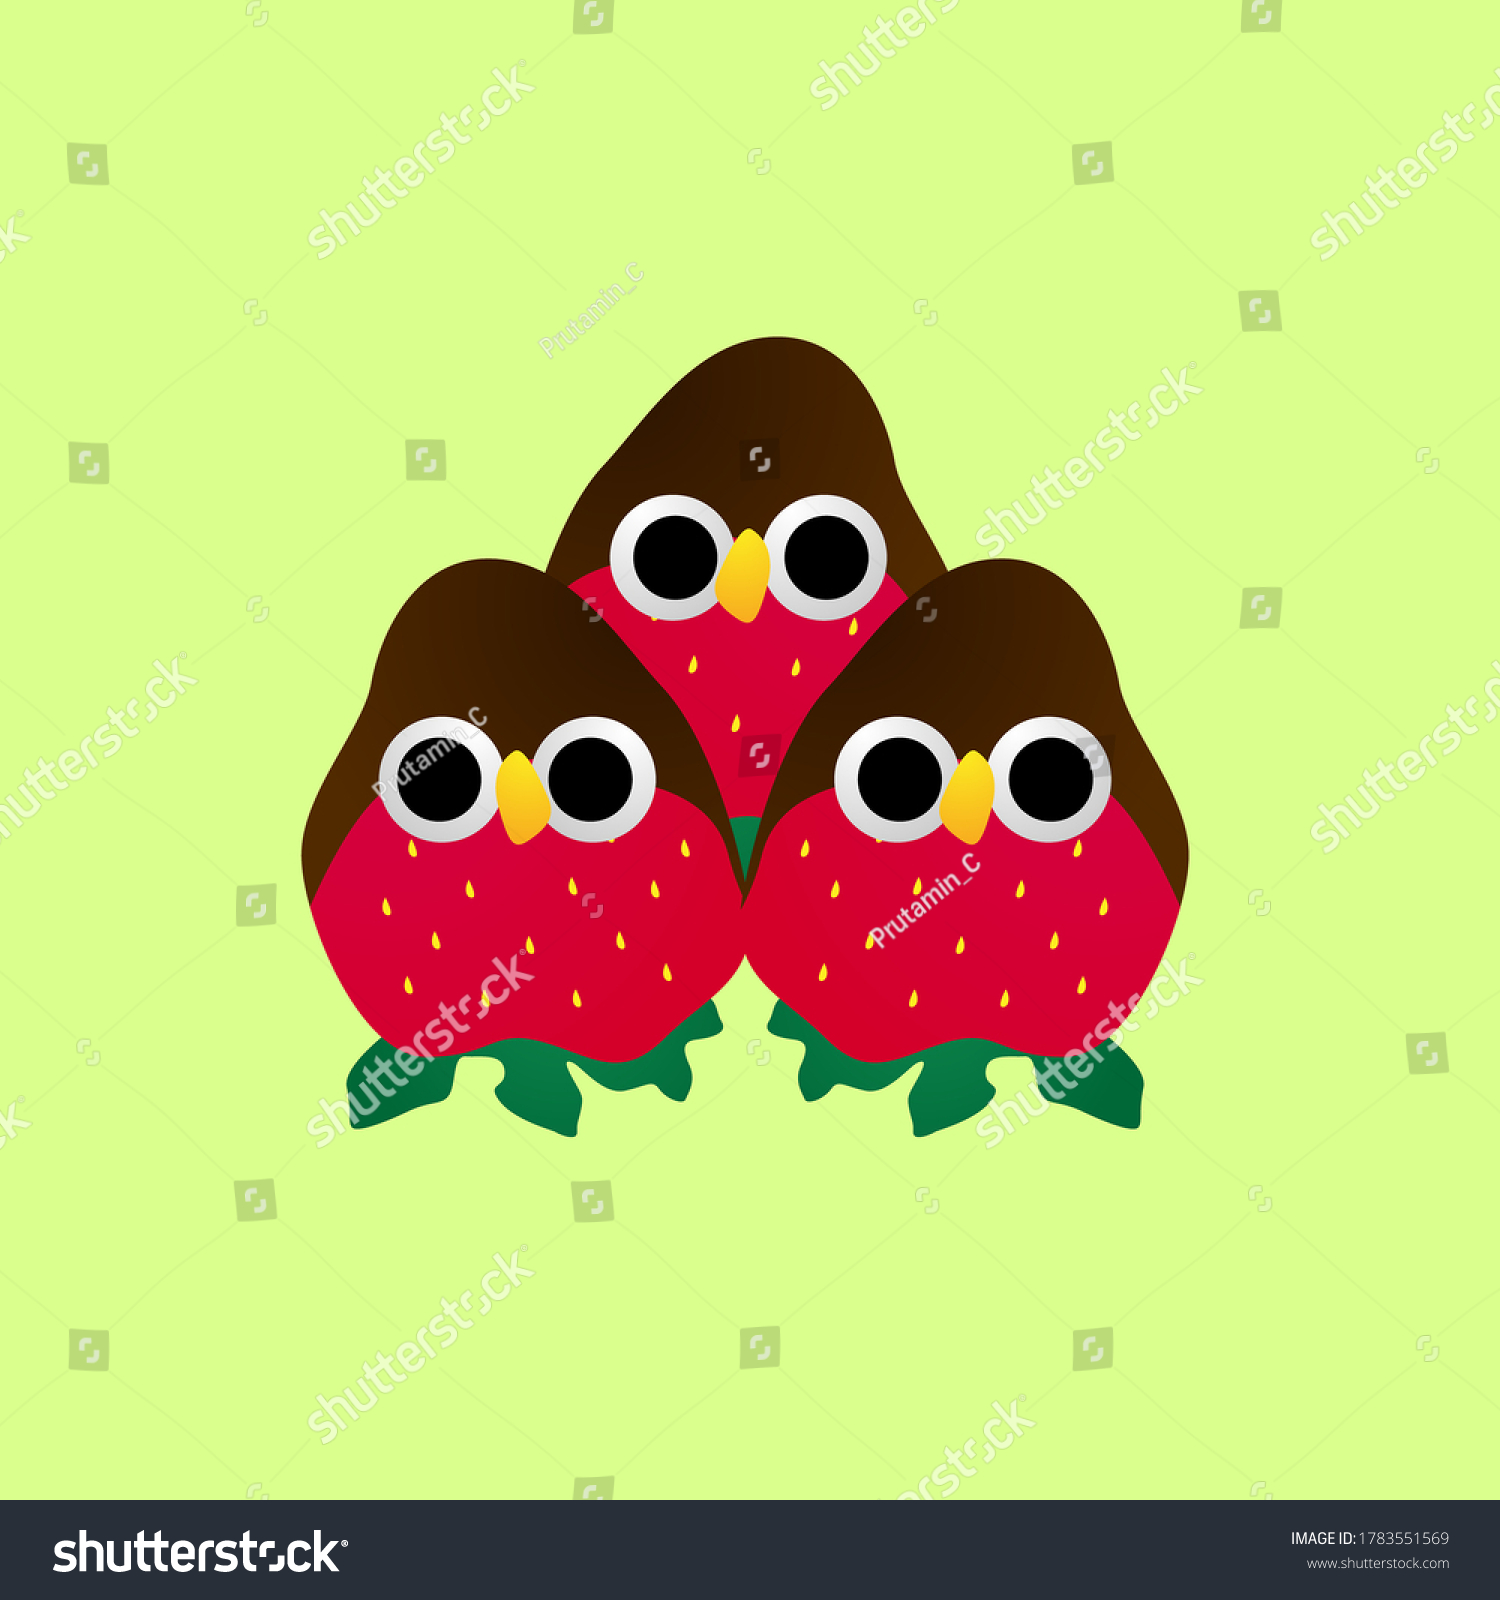 bird, Cute baby animal character illustration for kid t-shirt design or background